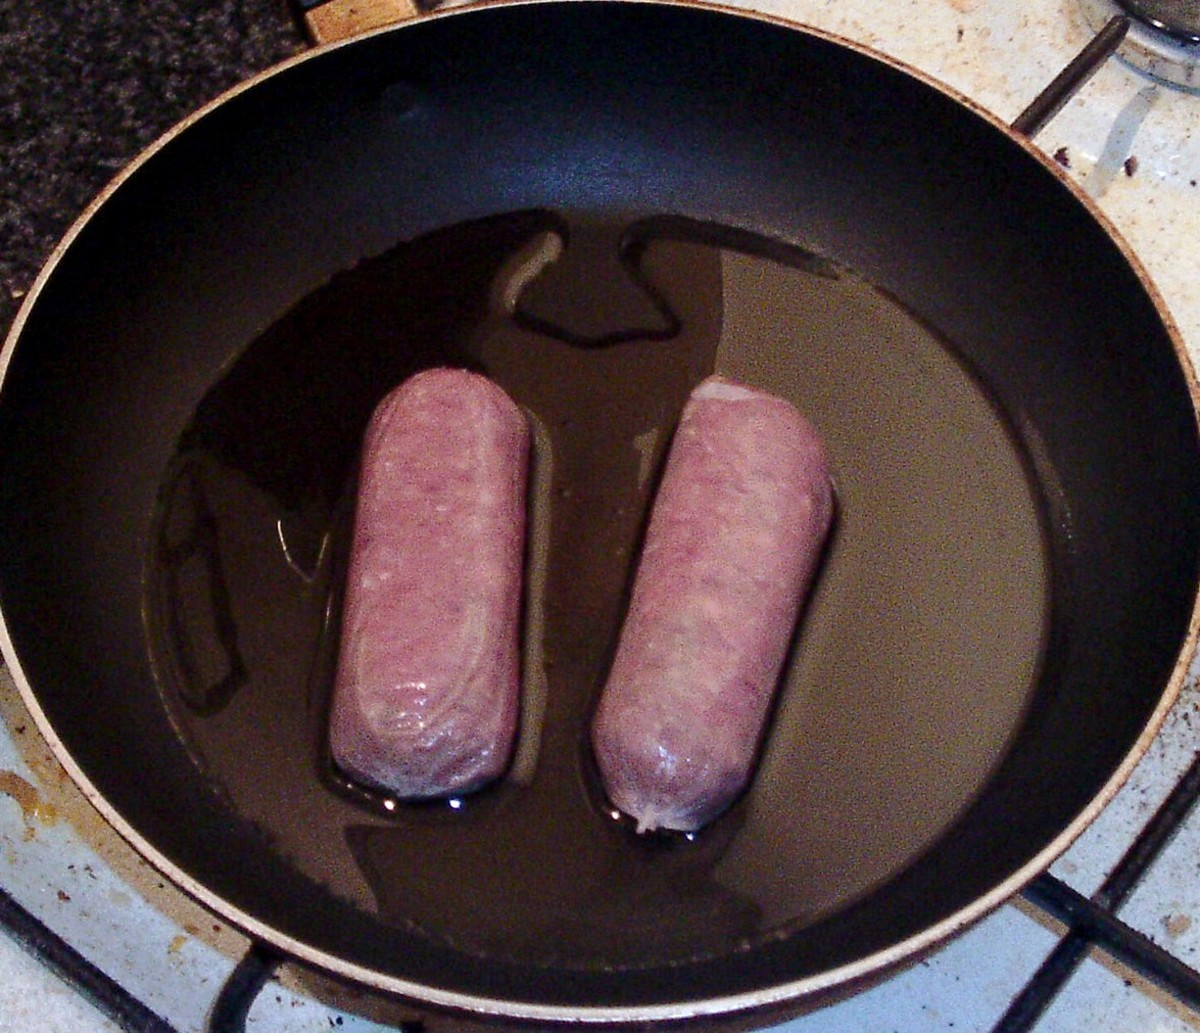 Venison sausages are added to some oil in a non-stick frying pan